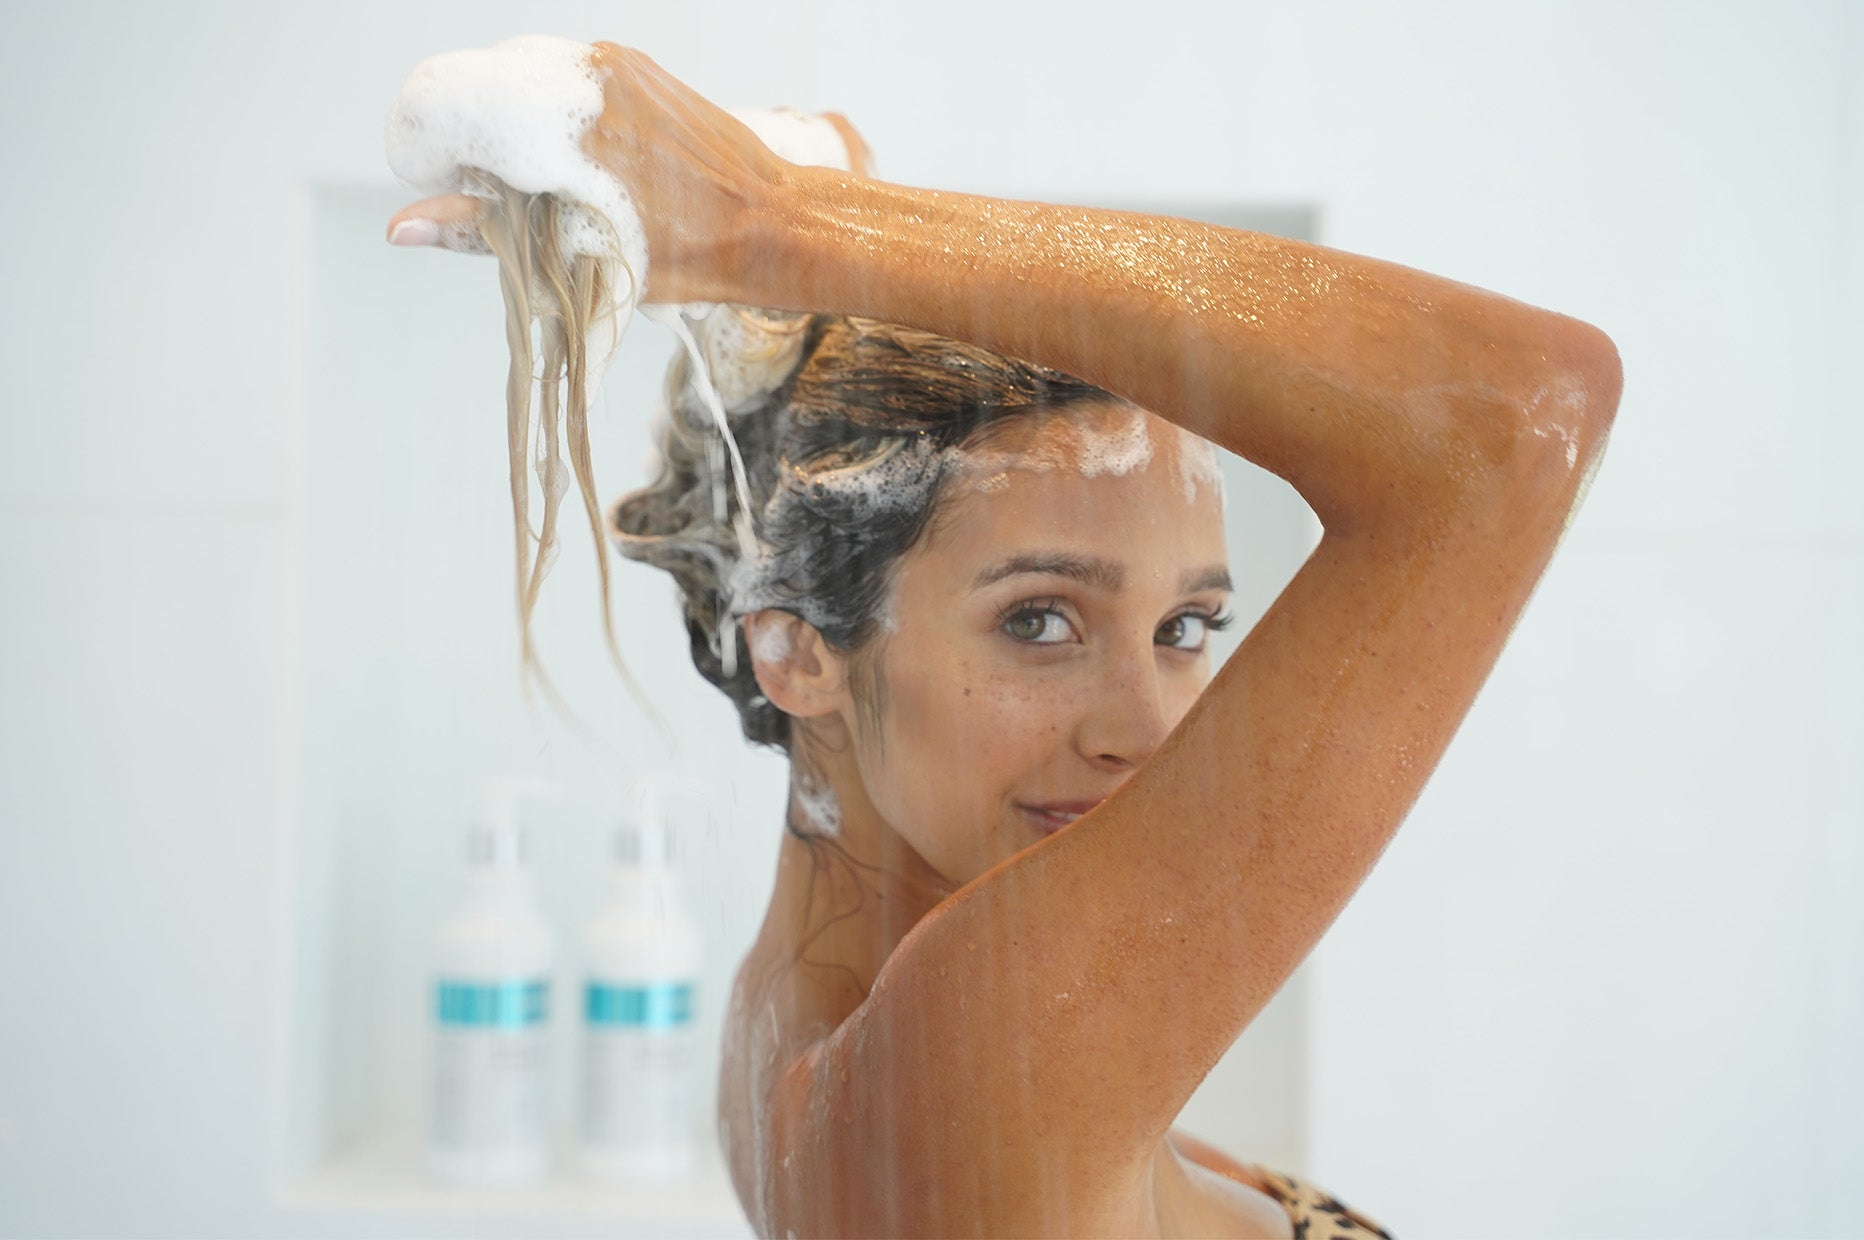 How To Properly Wash Your Hair (The Best Way)